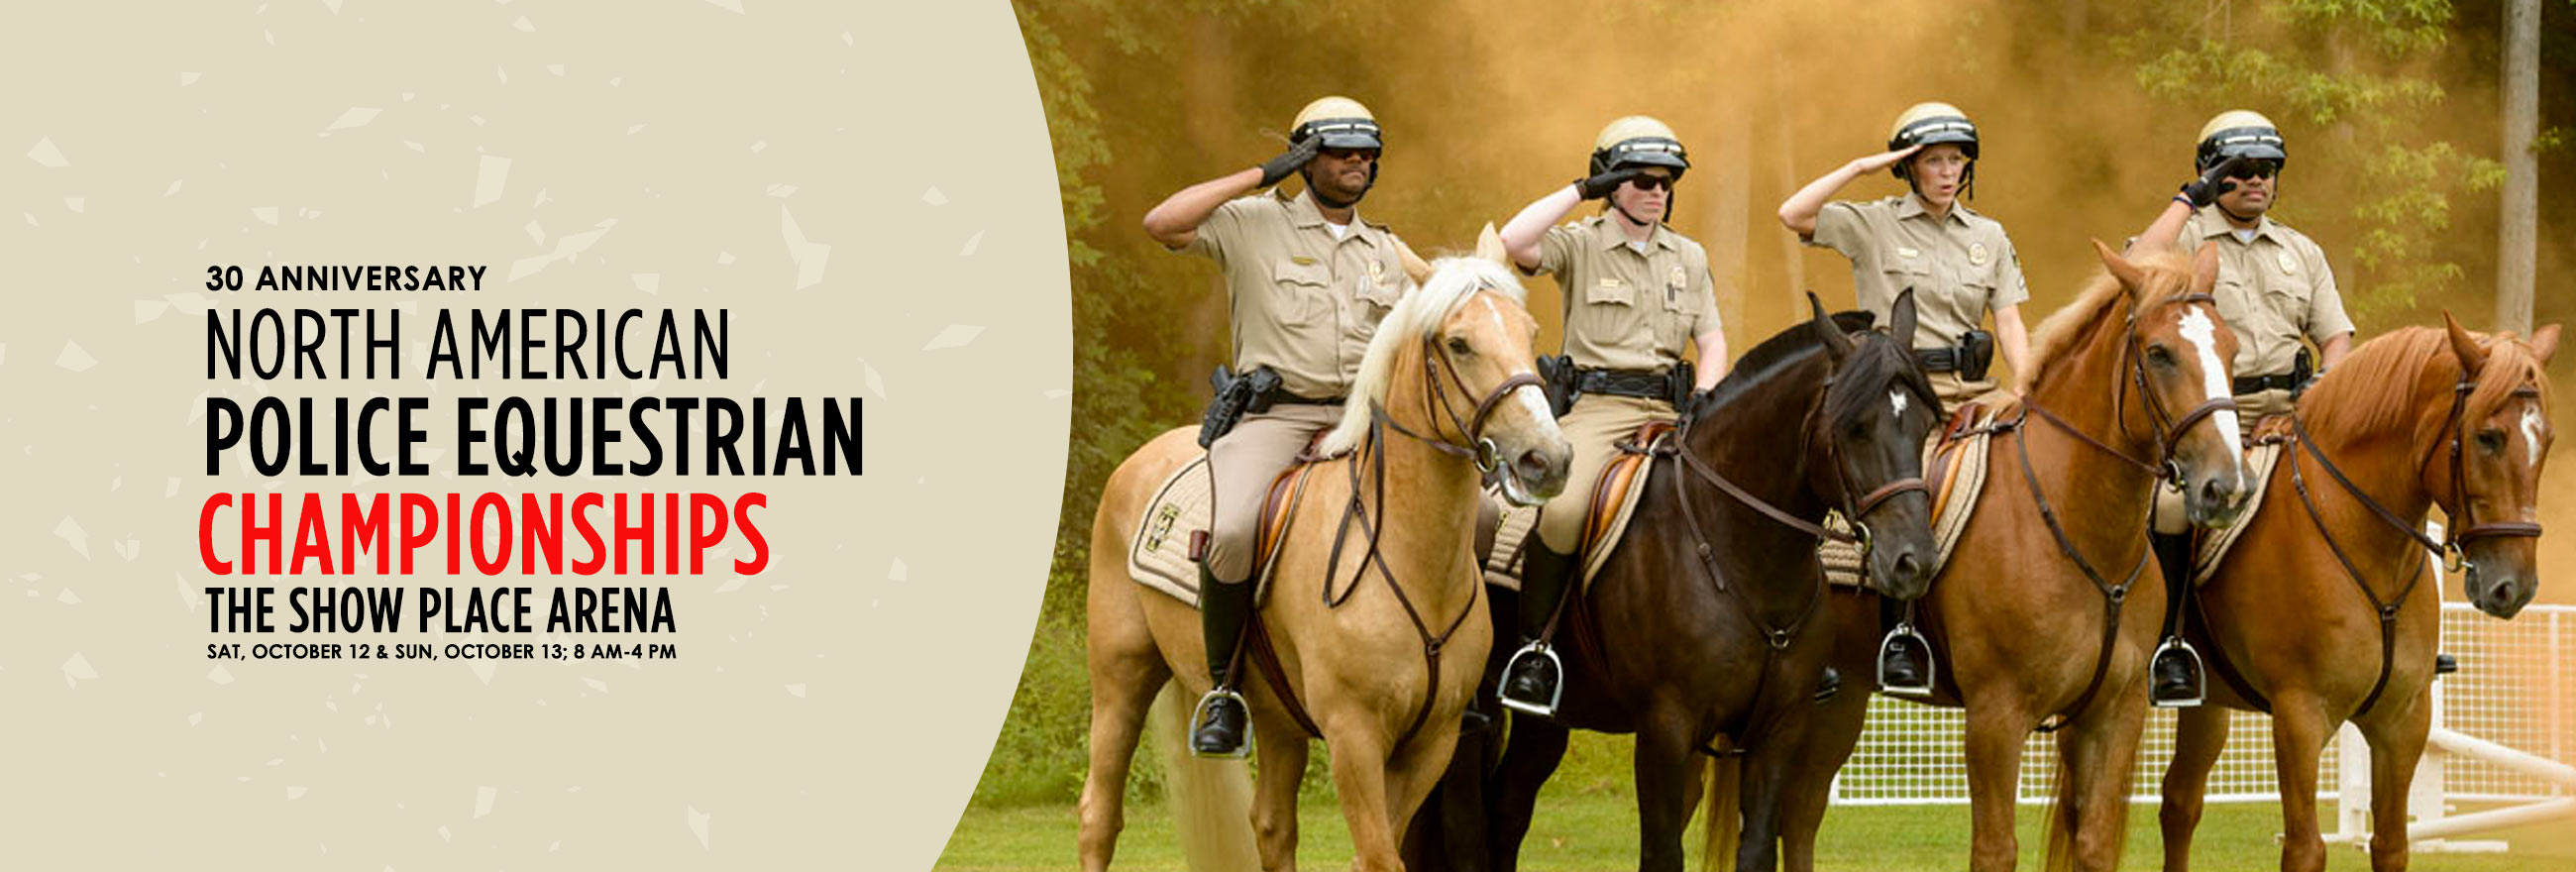 Park Police crew and their horses